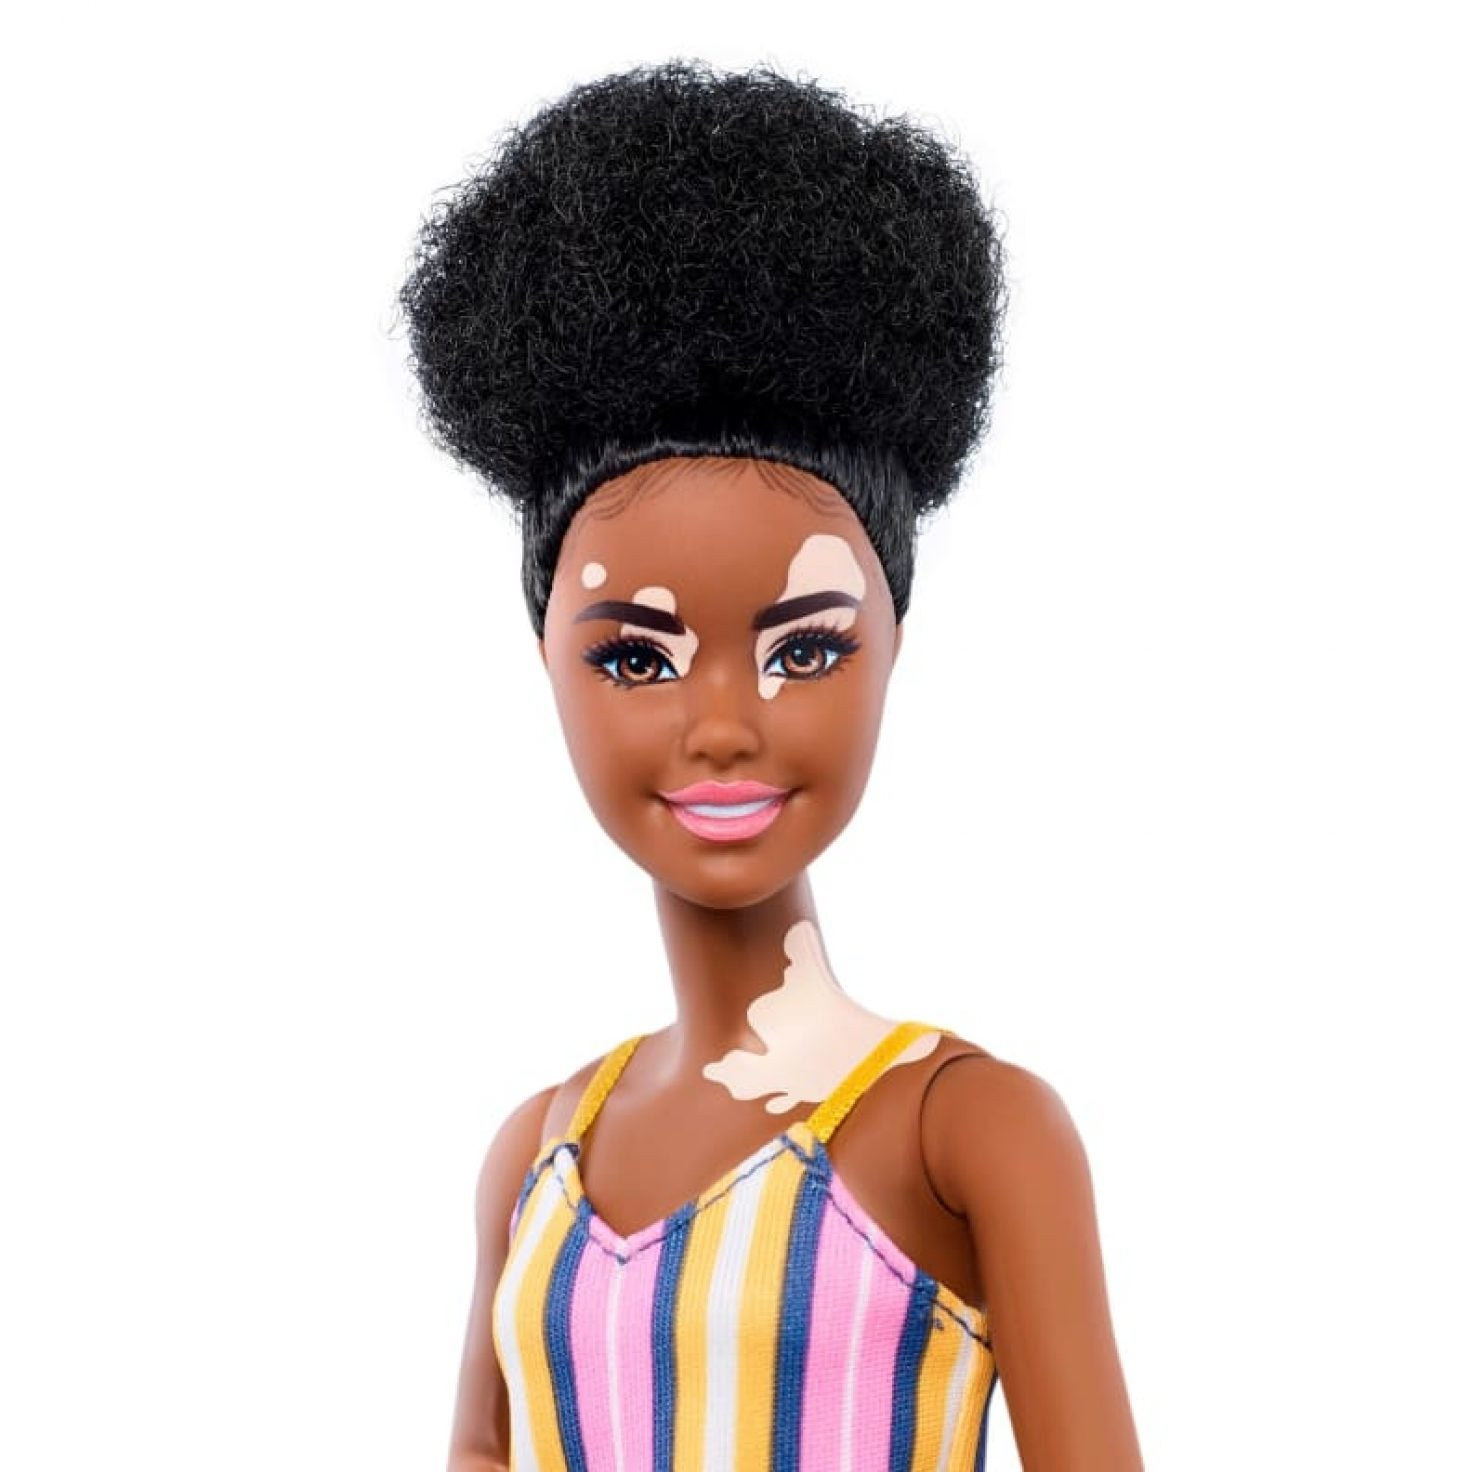 Barbie Locks Down Title Of Most Diverse Doll Line With New Melanin-Rich Offerings